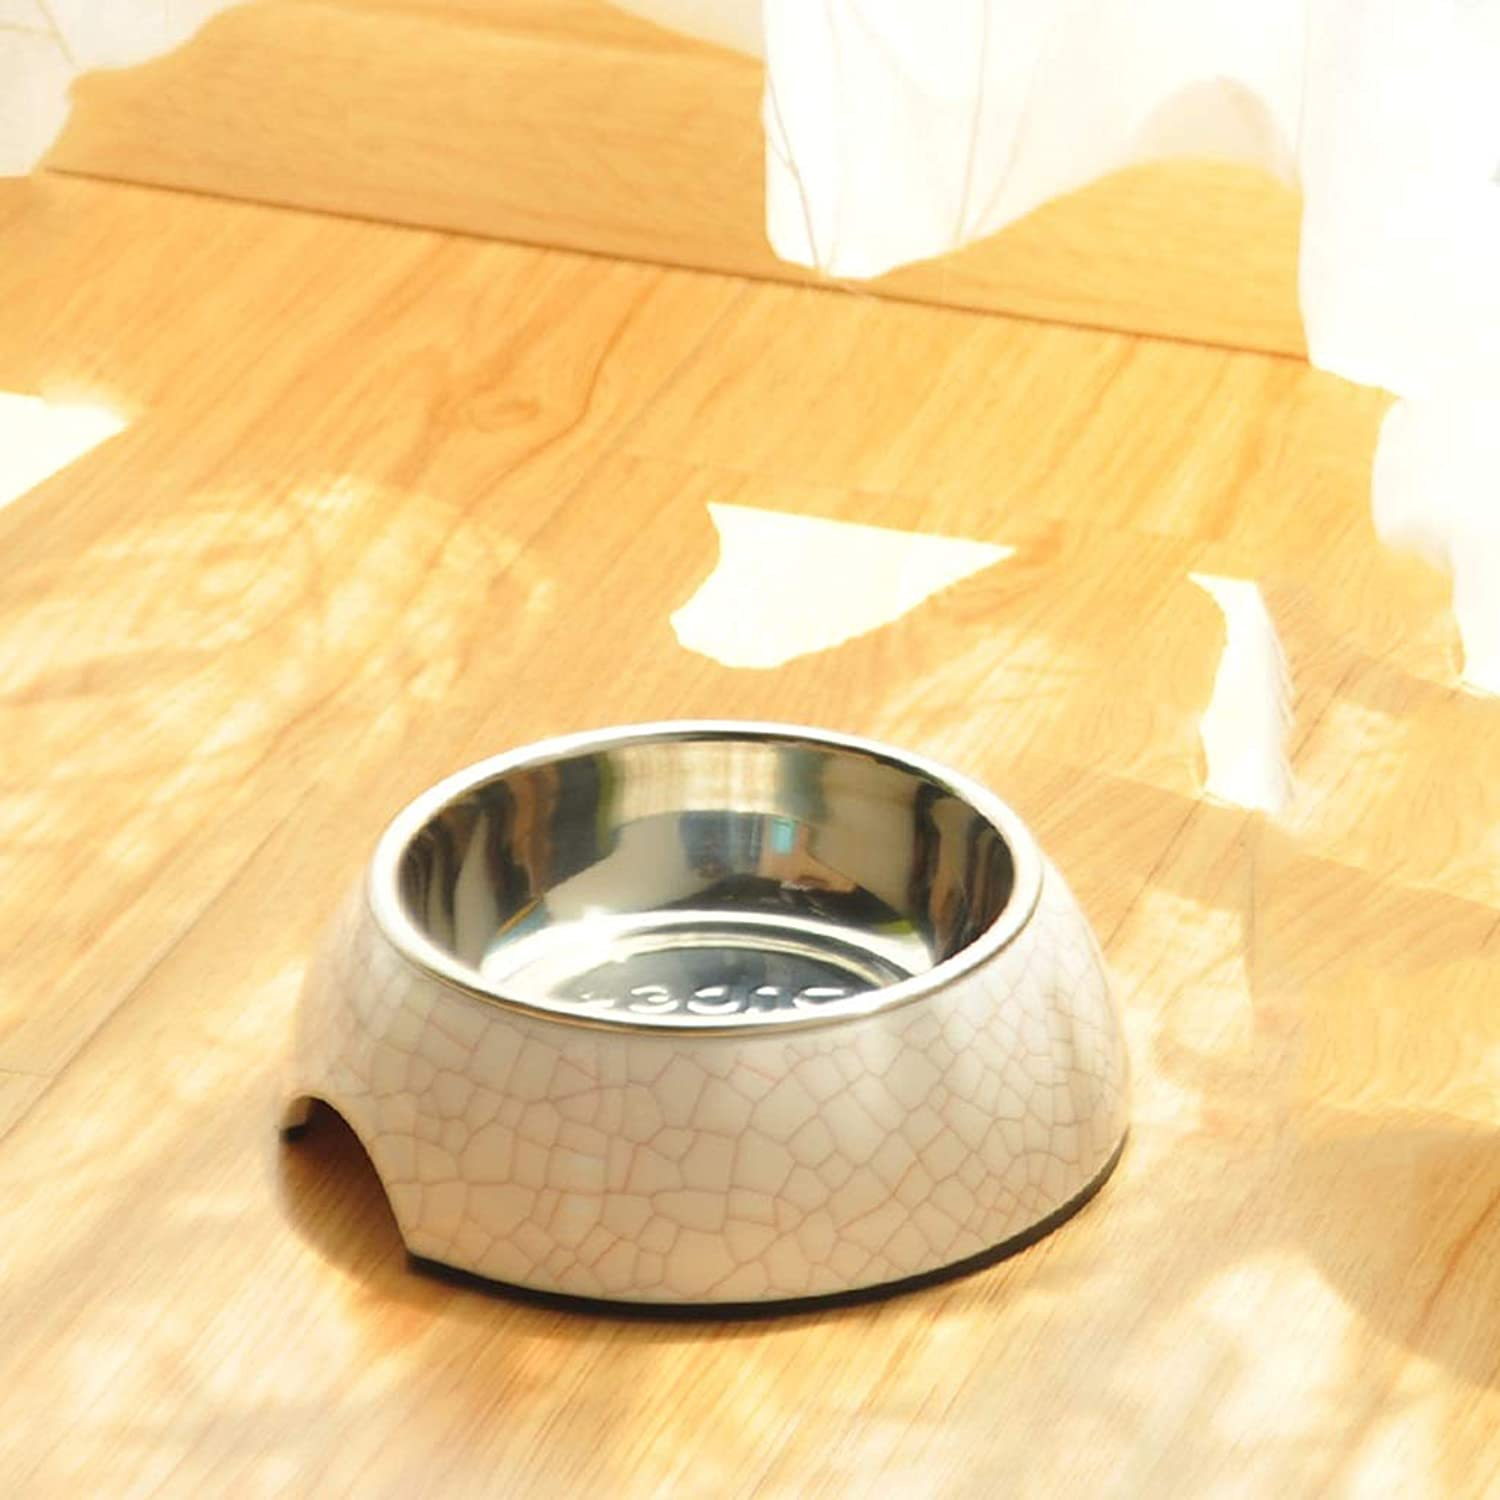 CXQ Dog Bowl Pet Bowl Dog Food Bowl Small Medium and Large Dog Stainless Steel AntiSkid Cat Bowl Creative Texture Shape Pet Supplies (Size   S)